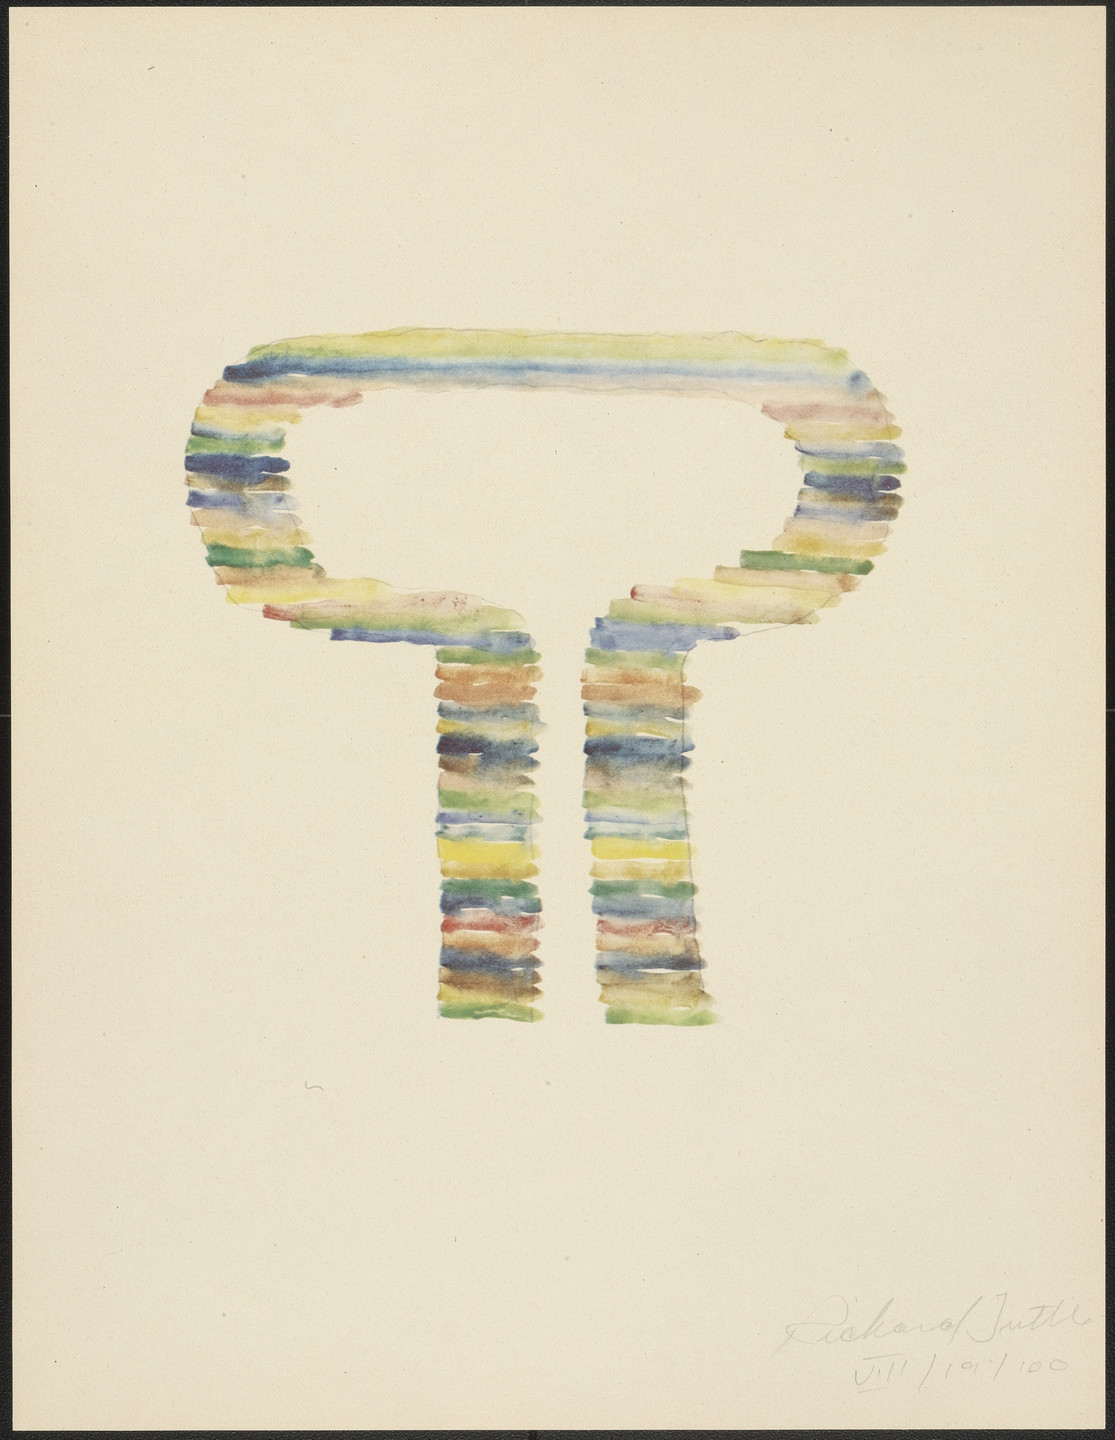 Richard Tuttle. VIII from Stacked Color Drawings, 1971. 1975